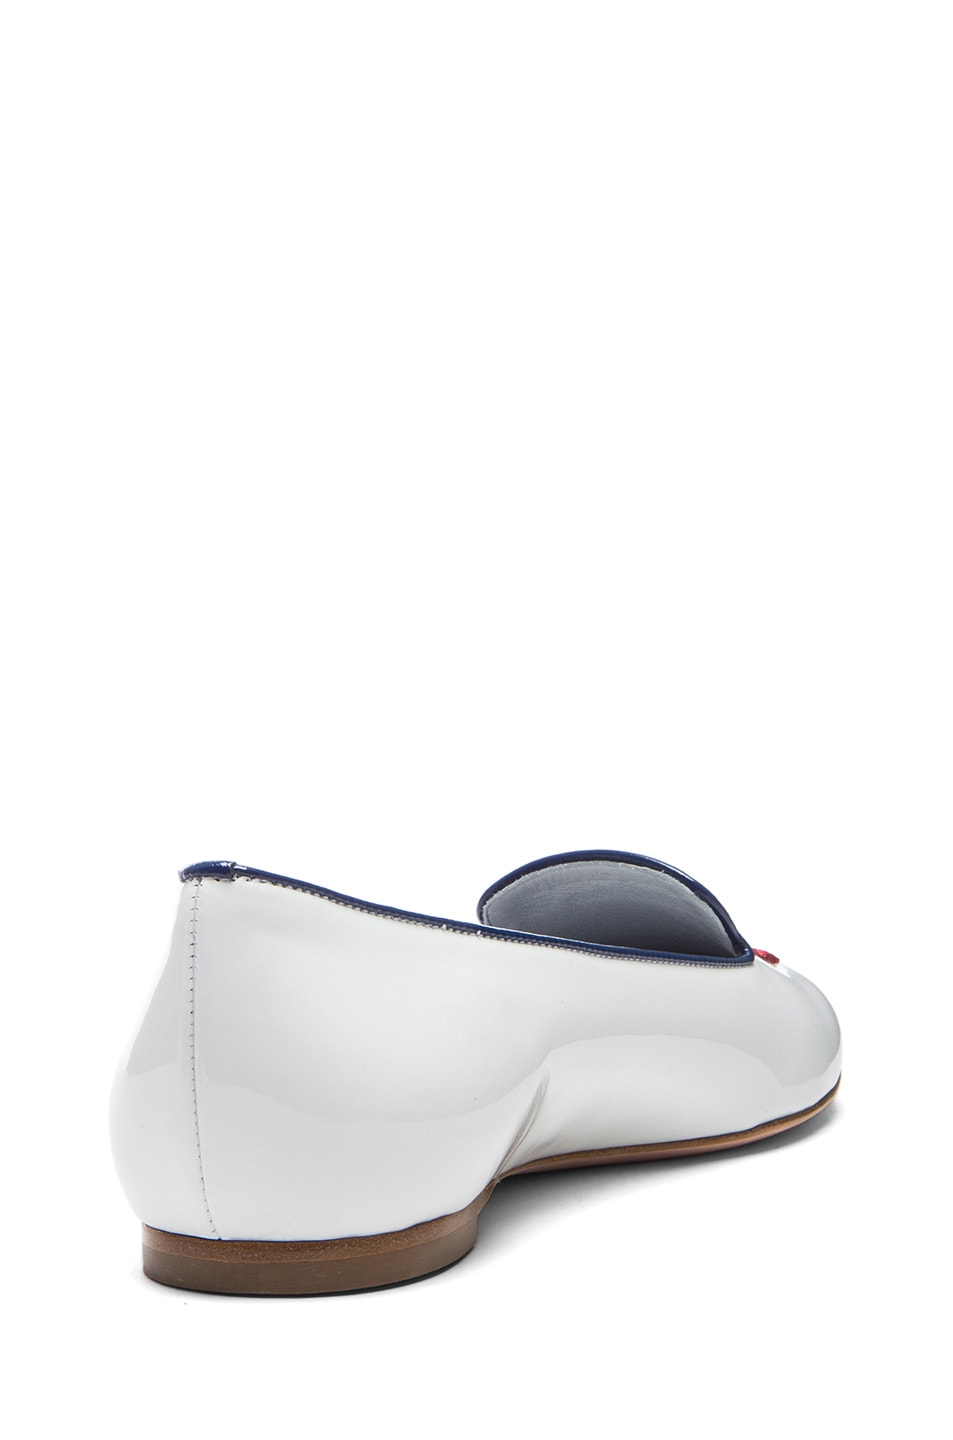 Image 3 of Alexander McQueen Skull Patent Leather Slippers in Patent White & New Blue